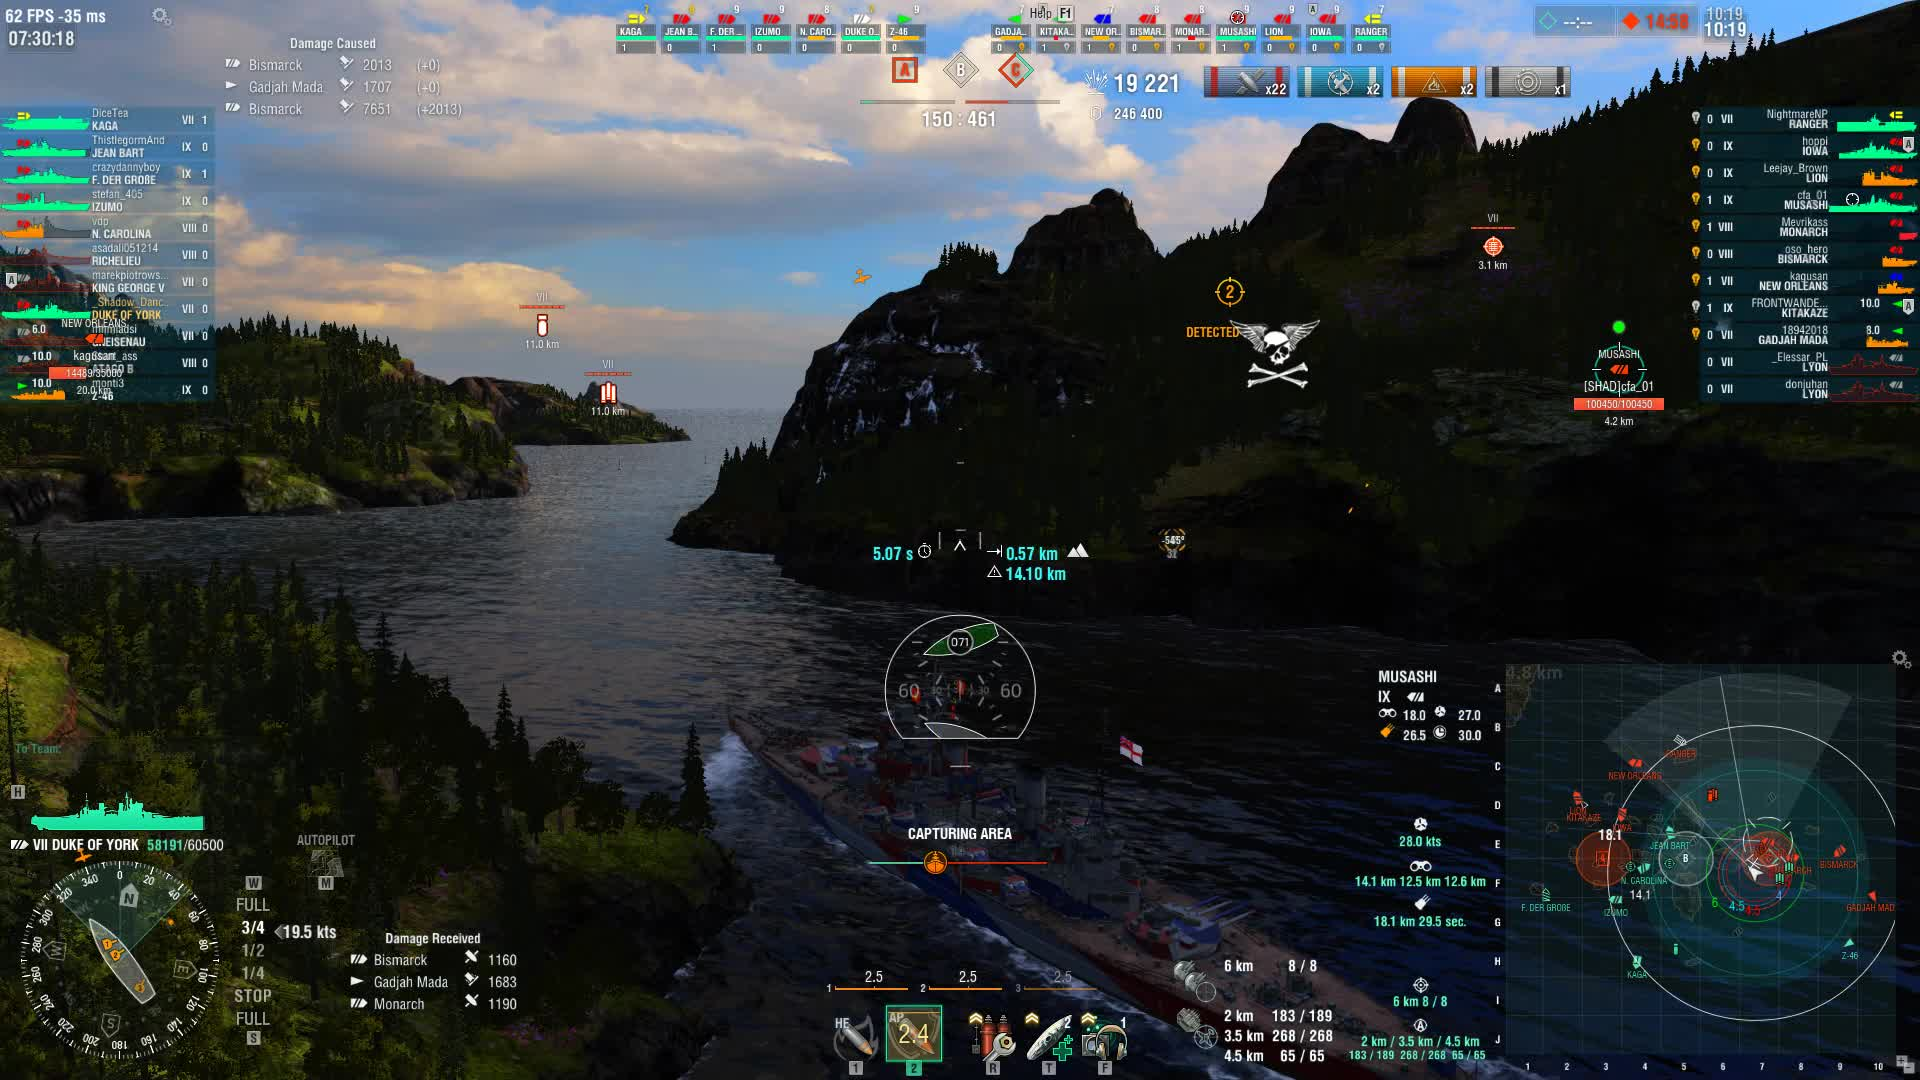 warthunder, worldofwarships, World of Warships 2019.01.17 - 07.30.18.02 GIFs